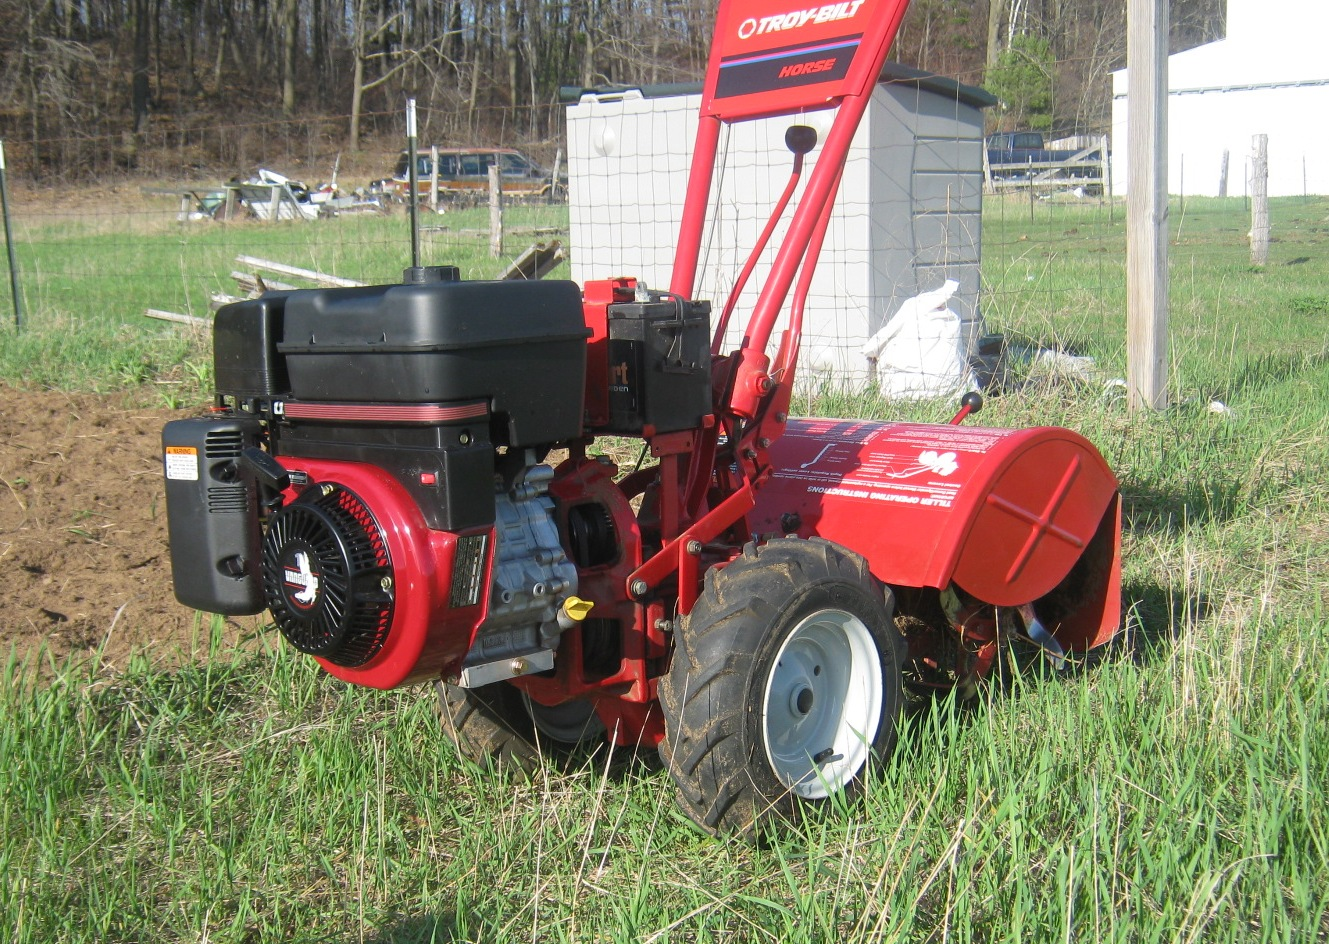 11hp briggs stratton vanguard on a troy bilt tiller st clare our troy bilt horse tiller with the new 11hp briggs stratton vanguard engine sitting ready and rearin to go by one of our numerous test gardens sciox Image collections